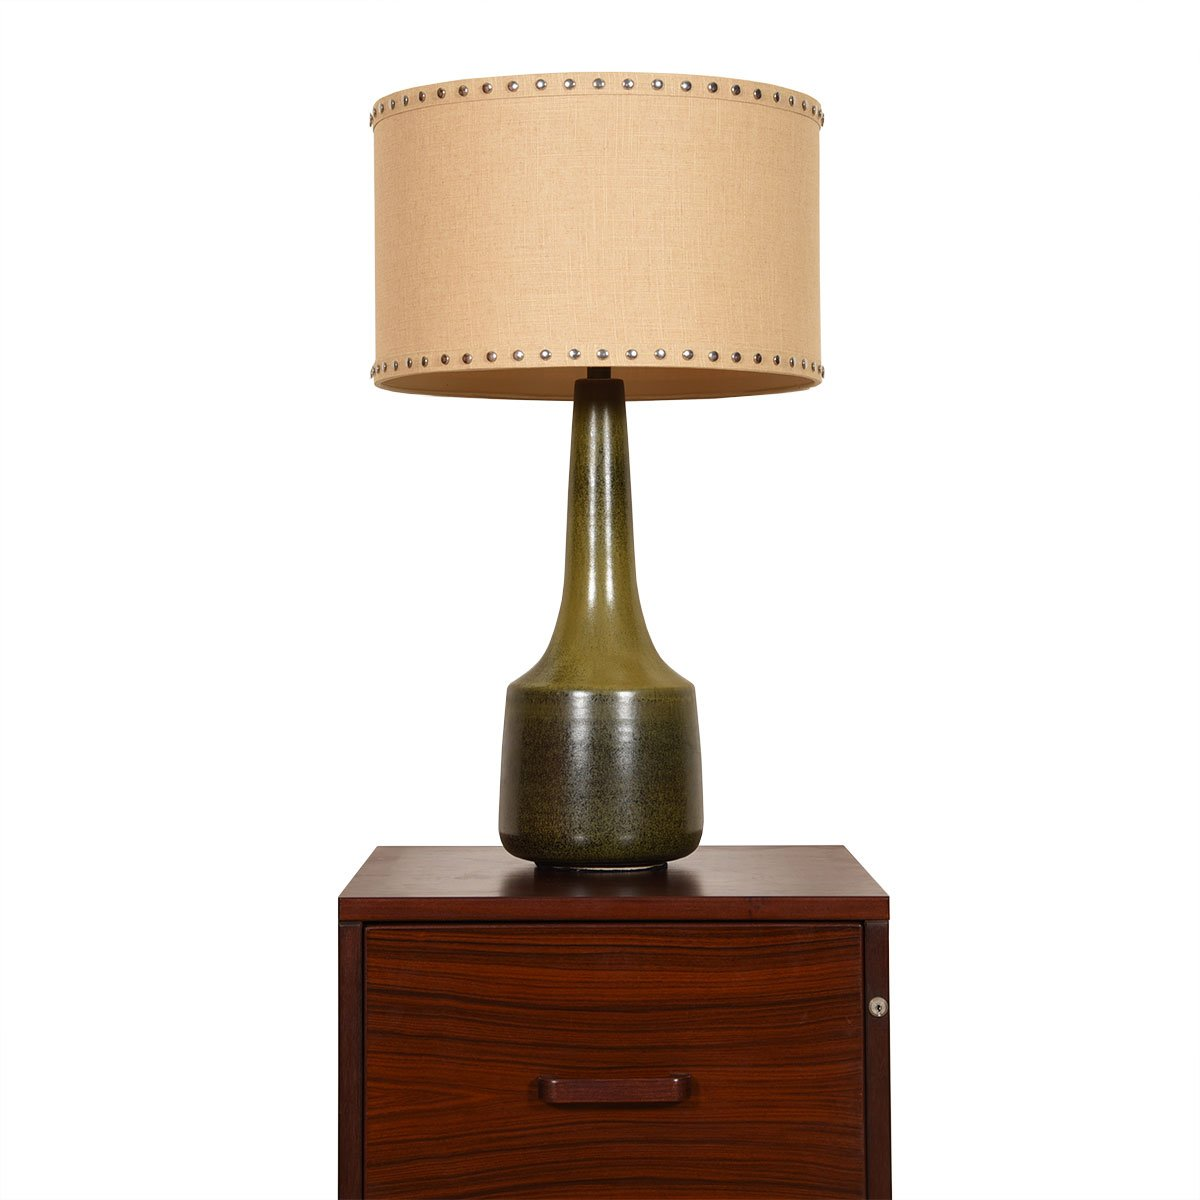 Ceramic Mid Century Table Lamp by Bostlund